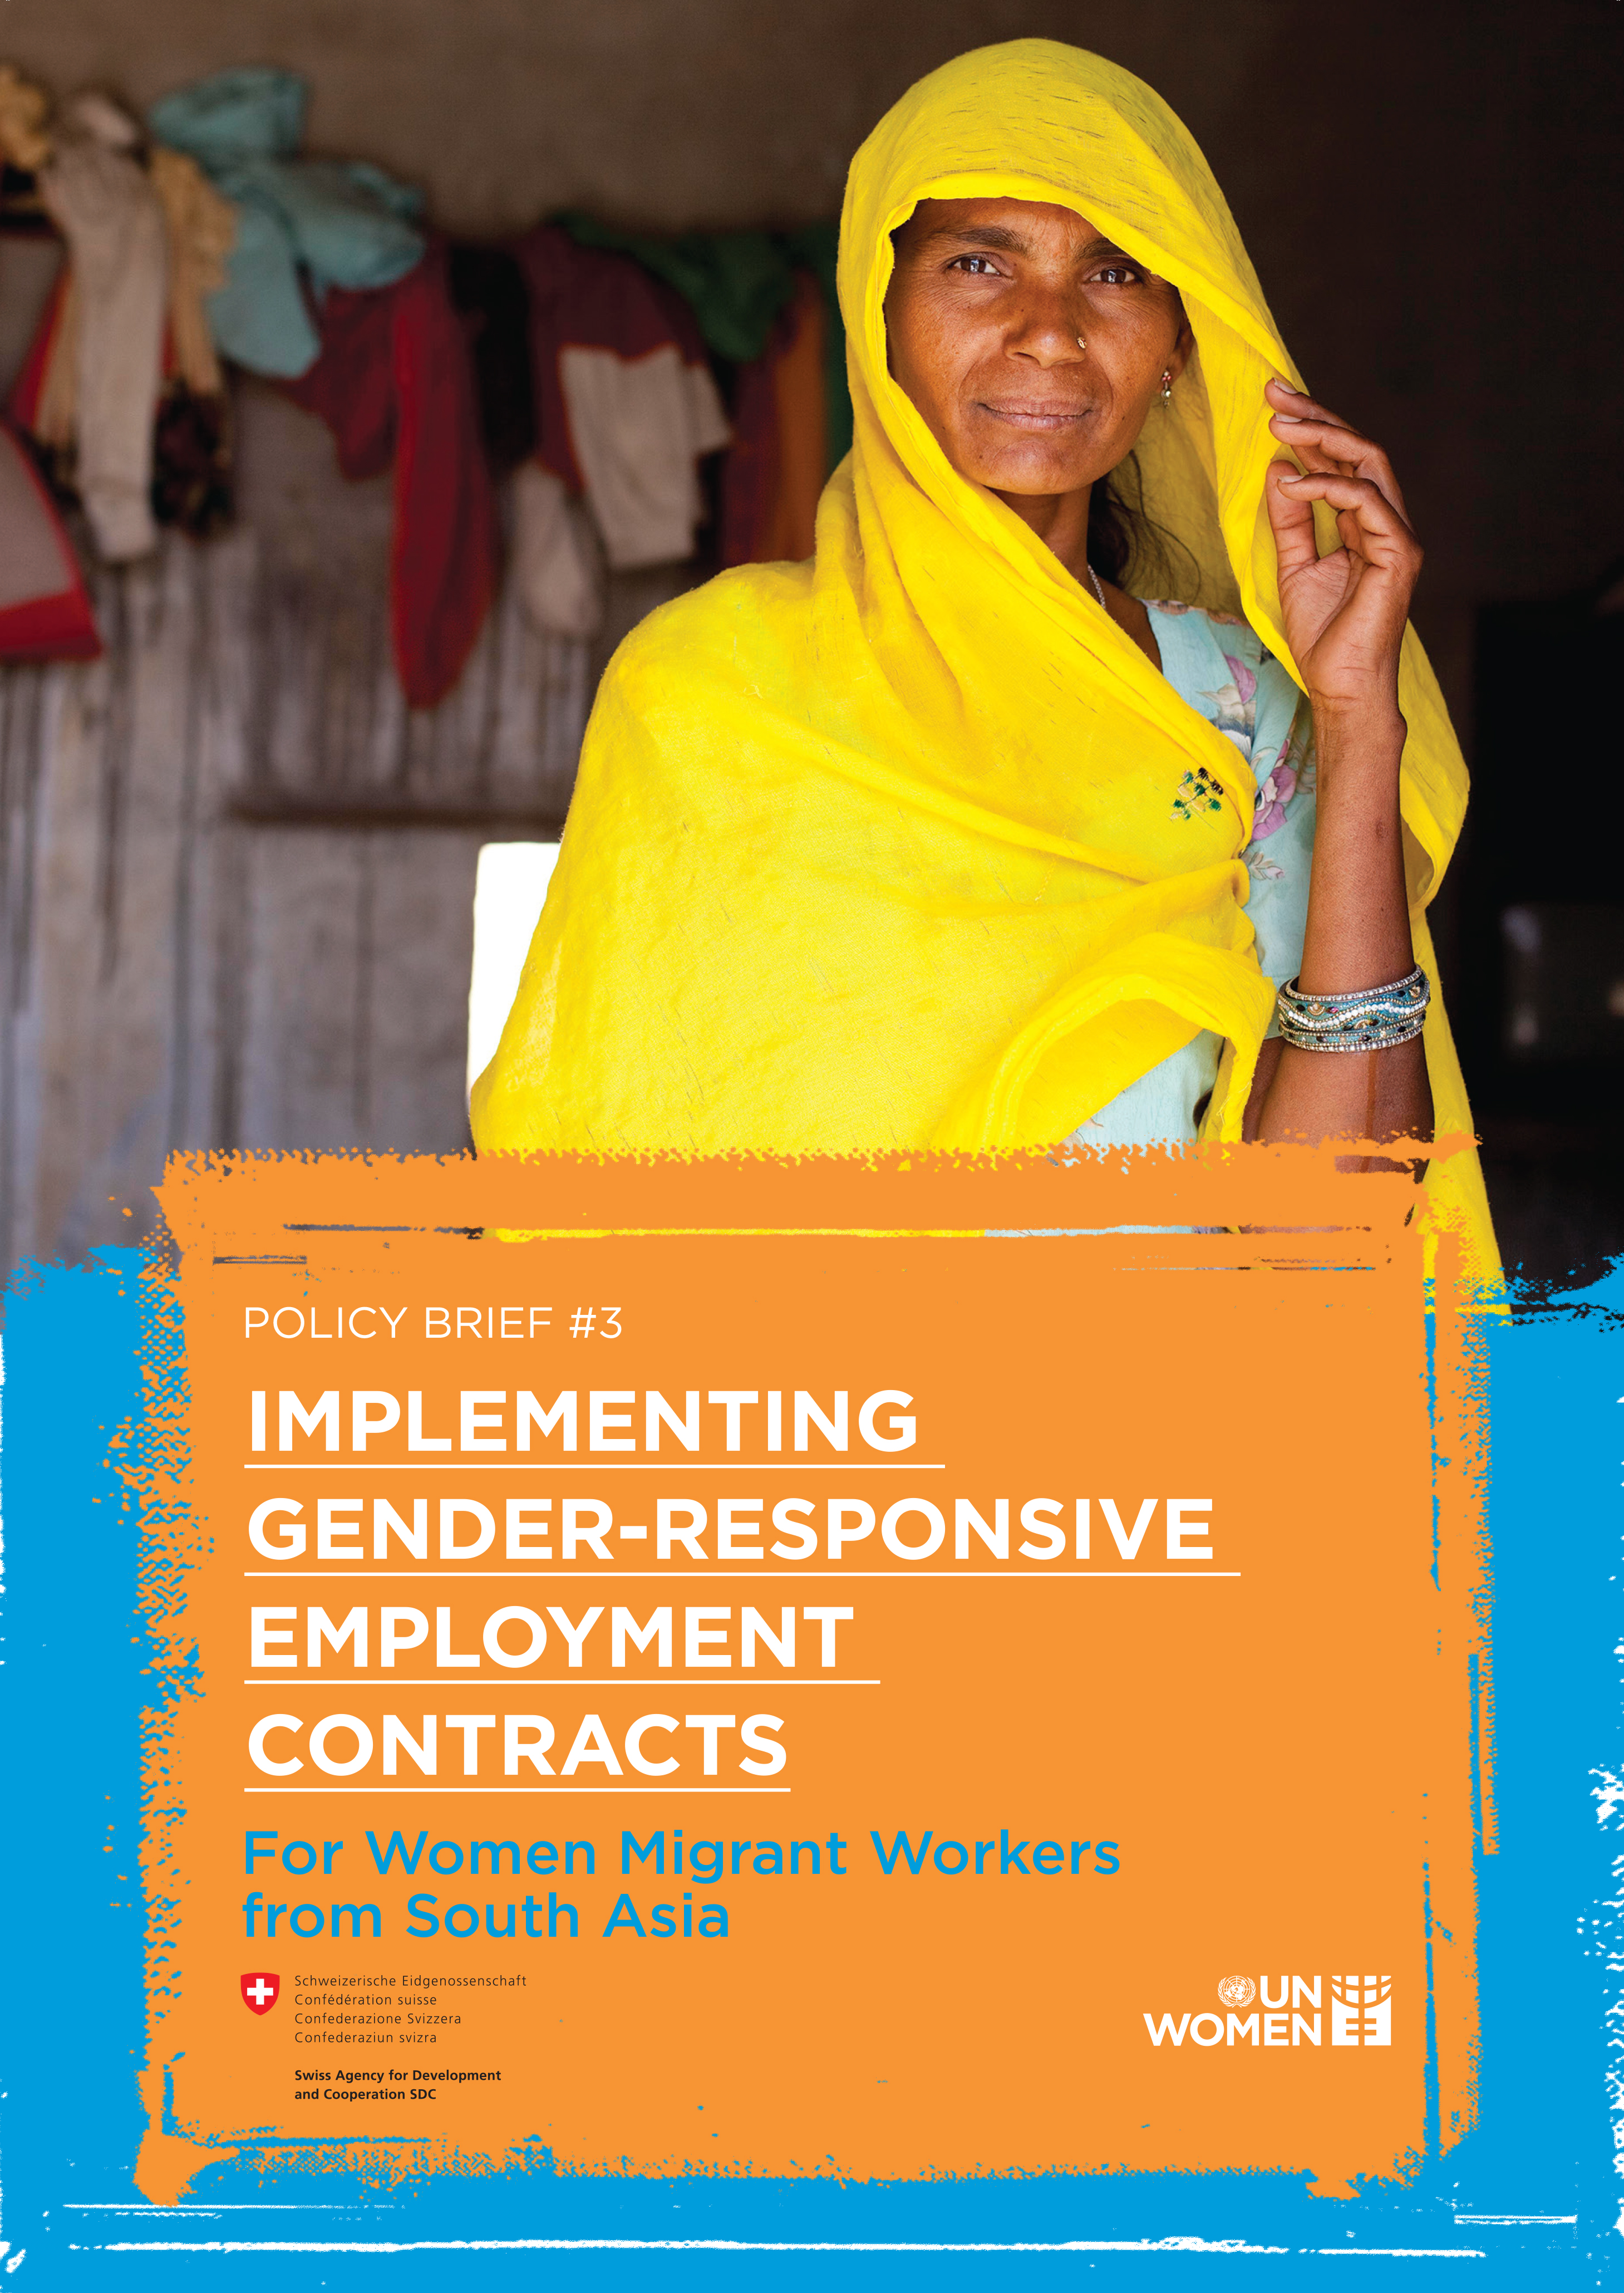 Migrant Workers in South Asia and the Middle East: Implementing Gender-Responsive Employment Contracts